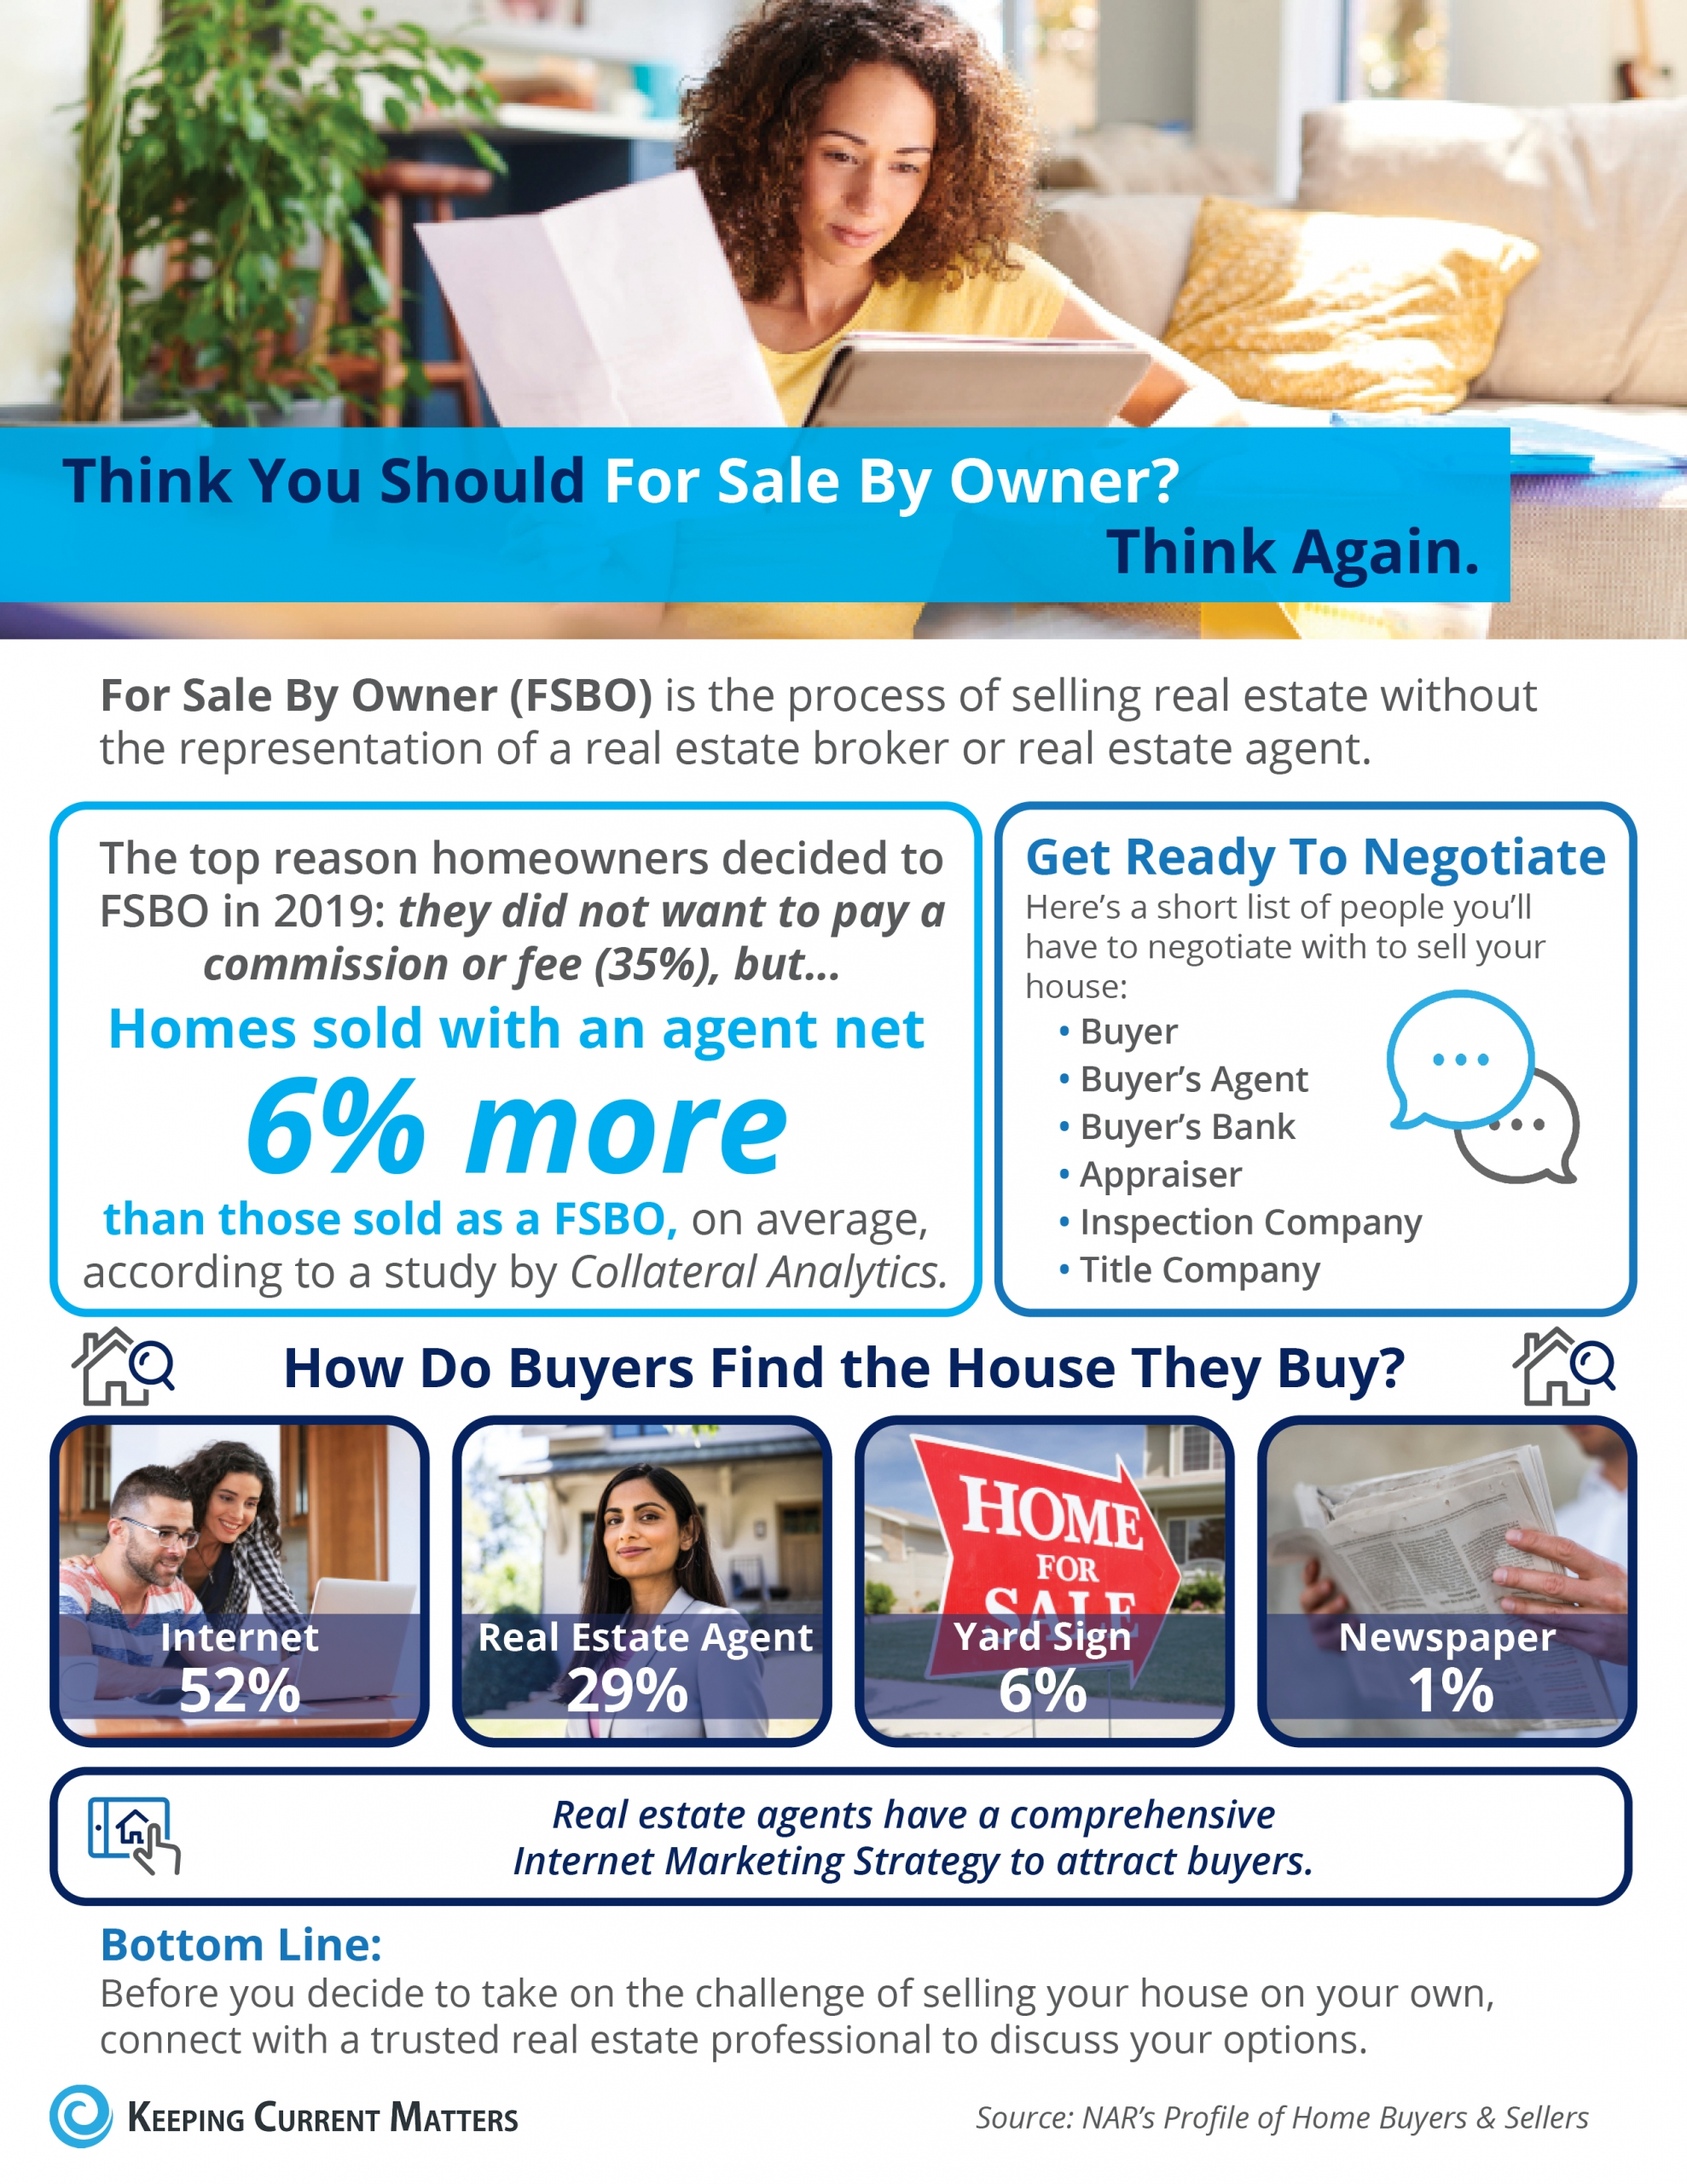 Think You Should For Sale By Owner? Think Again [INFOGRAPHIC] | Keeping Current Matters